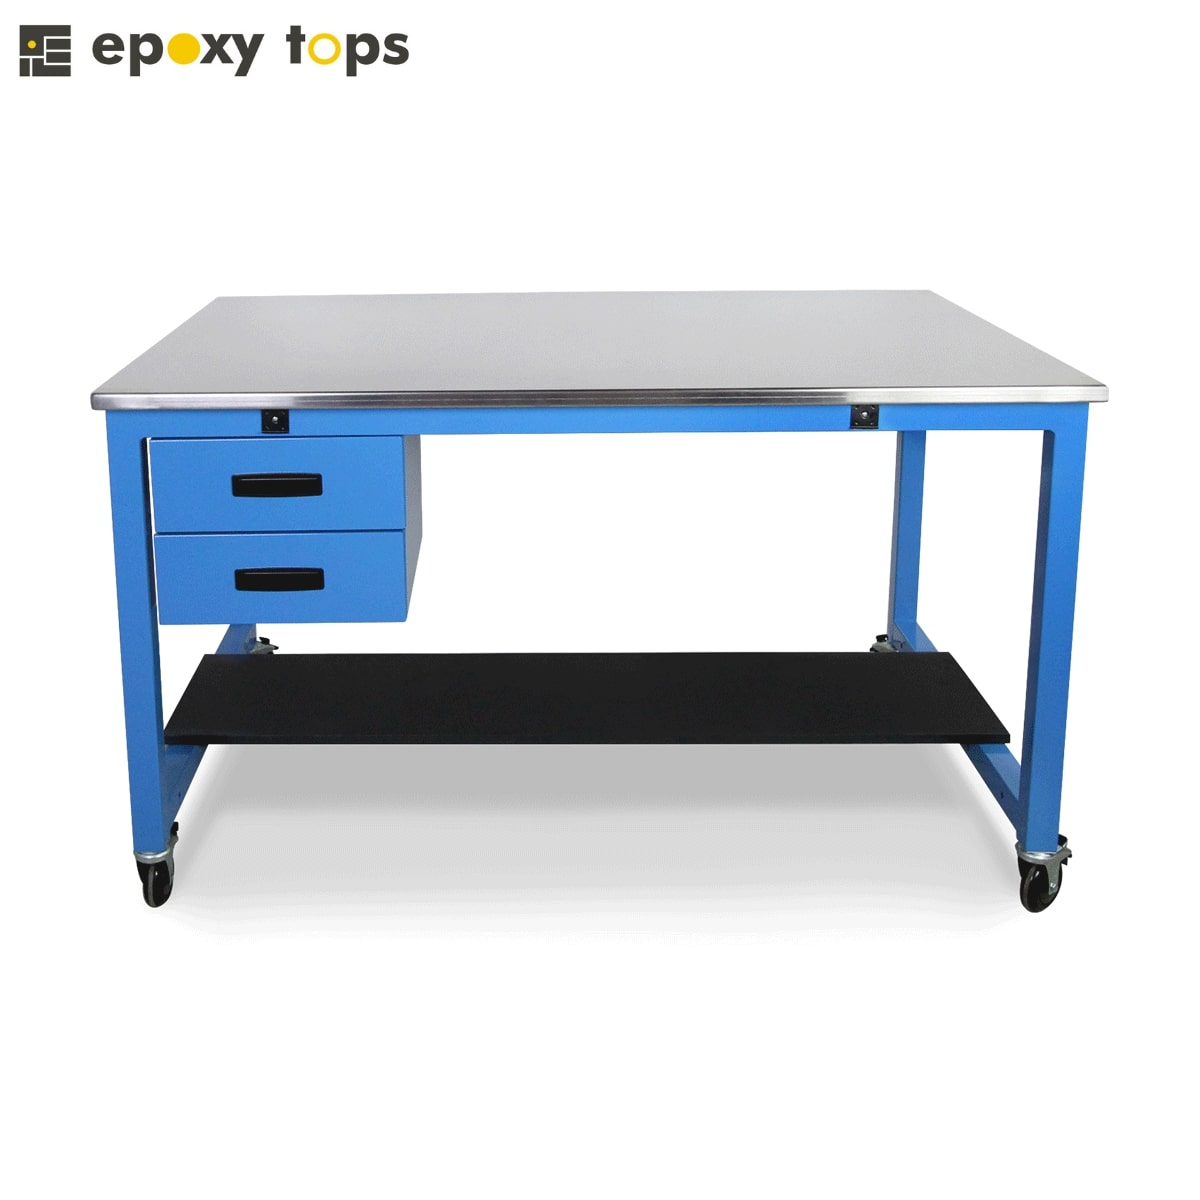 blue stainless steel bench